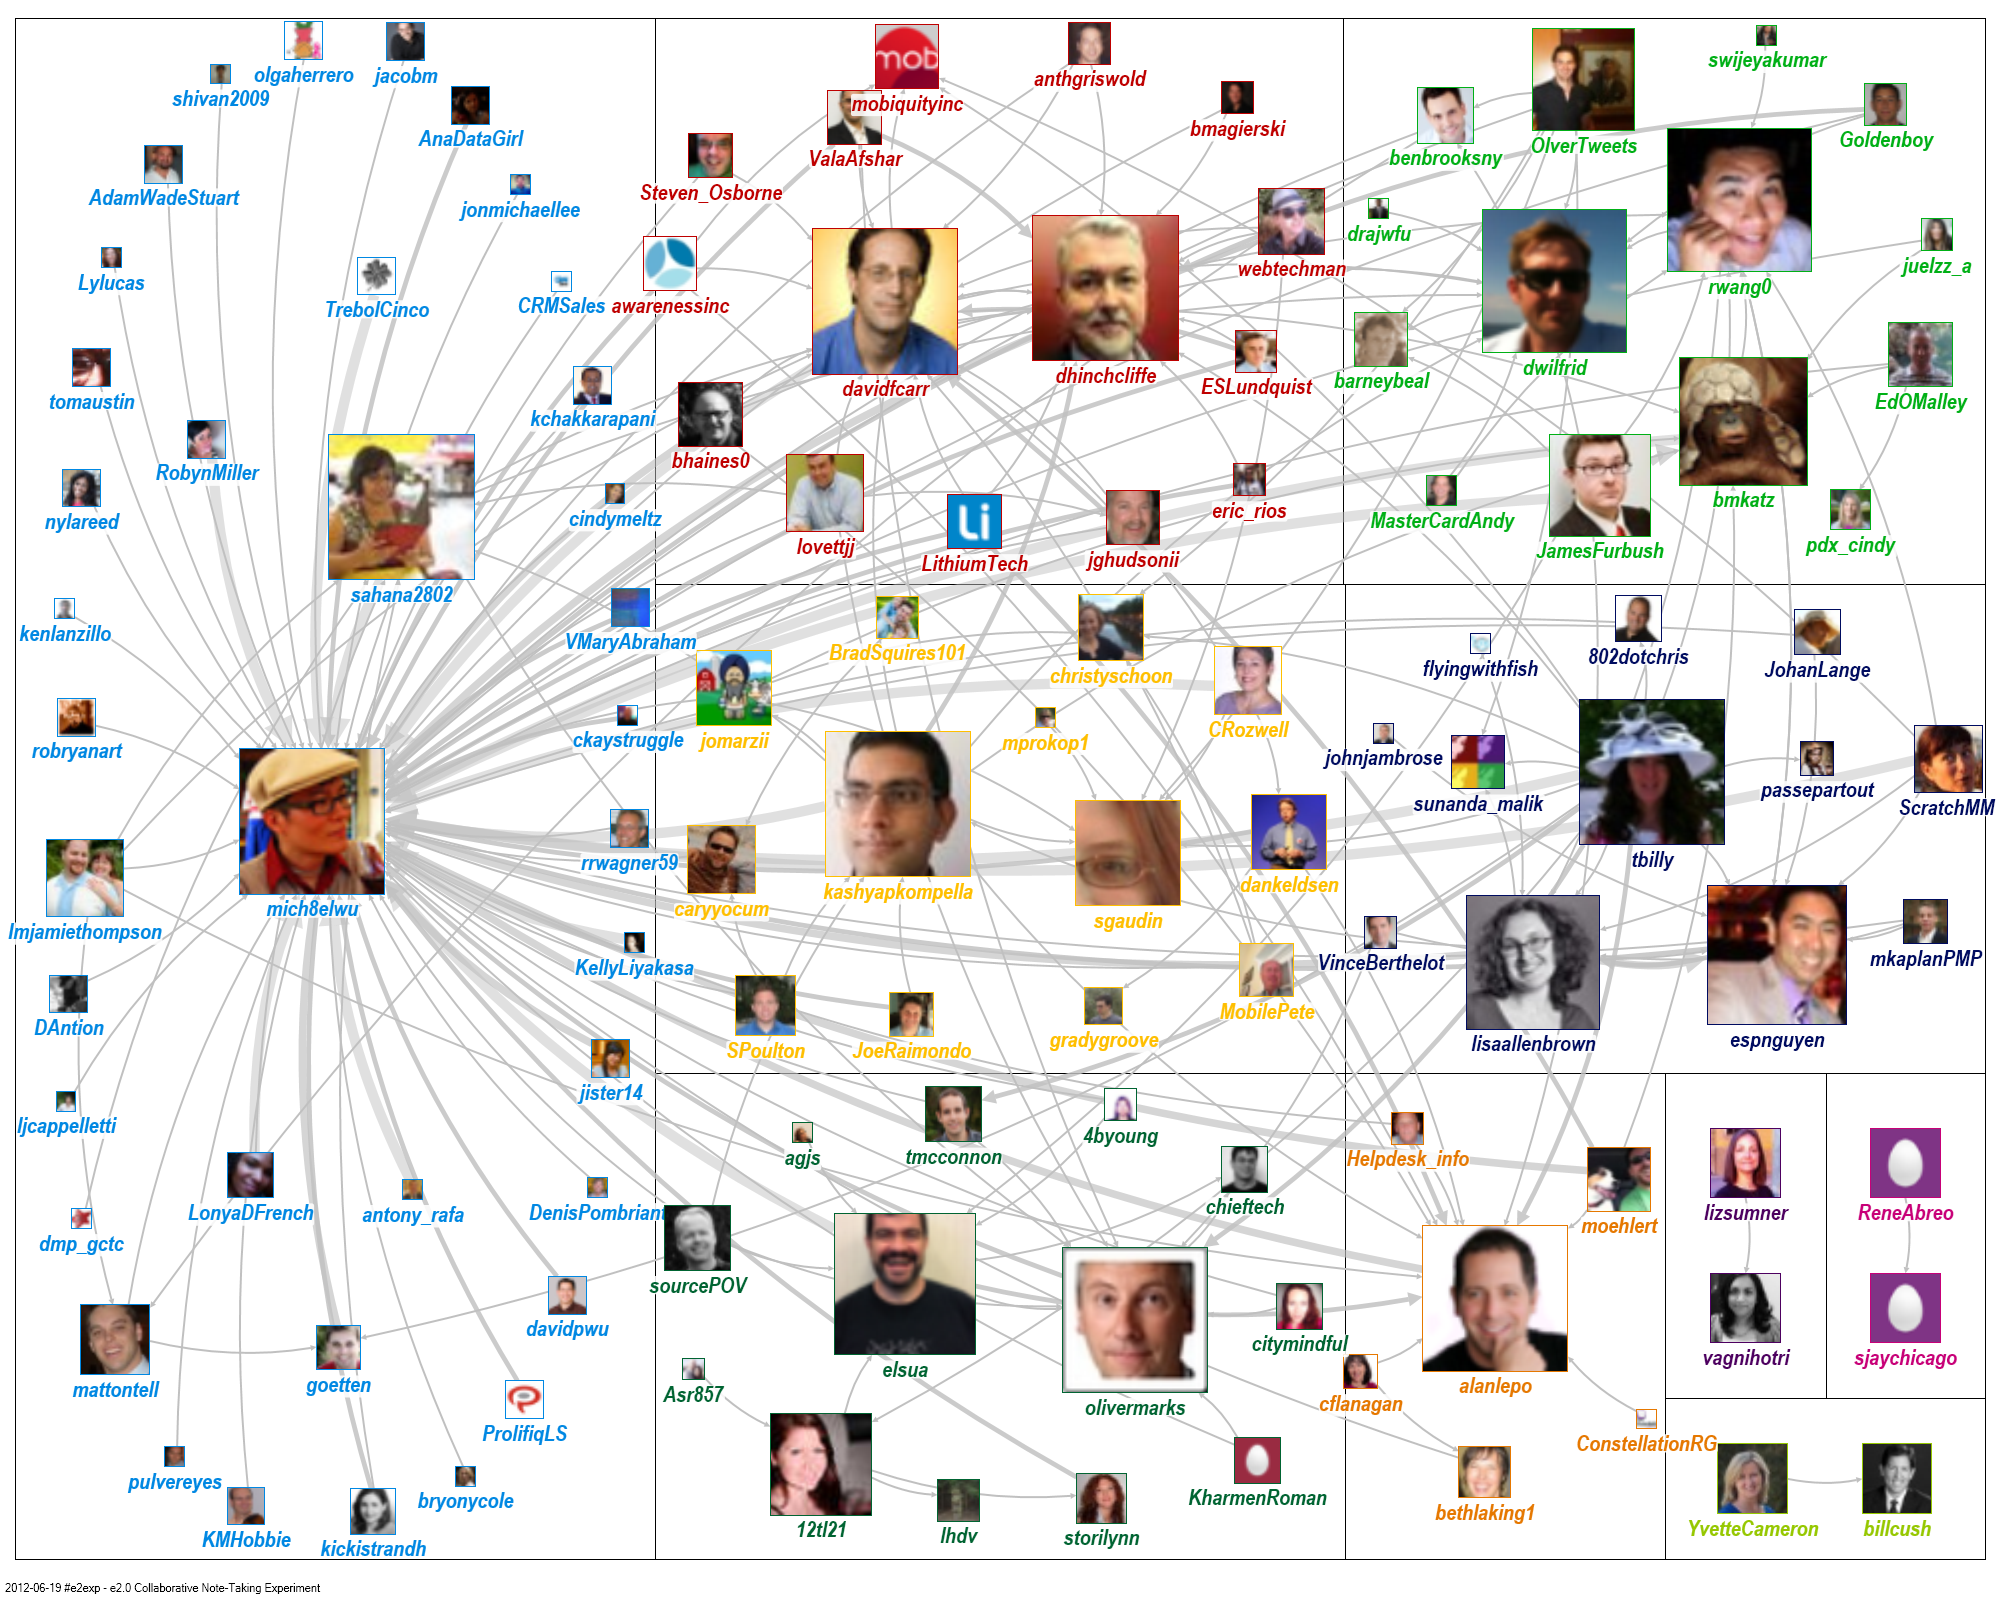 e2conf e2exp CollaborationGraph_clustered.png